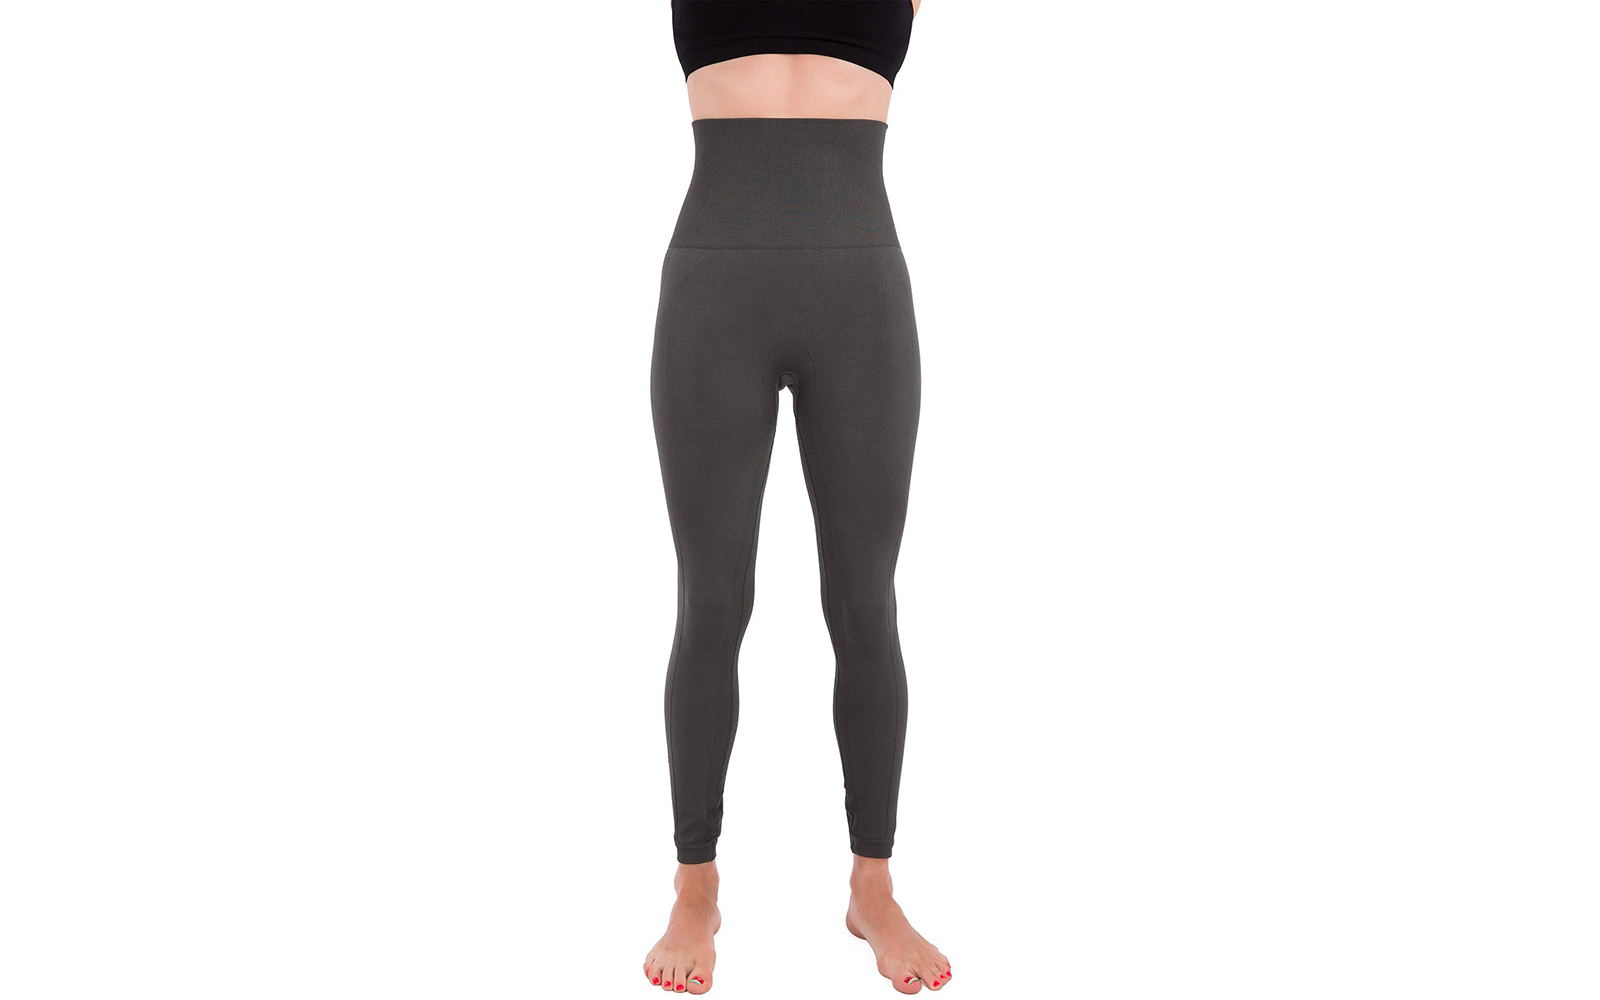 Homma Premium Thick High Waist Tummy Compression Slimming Leggings - Charcoal